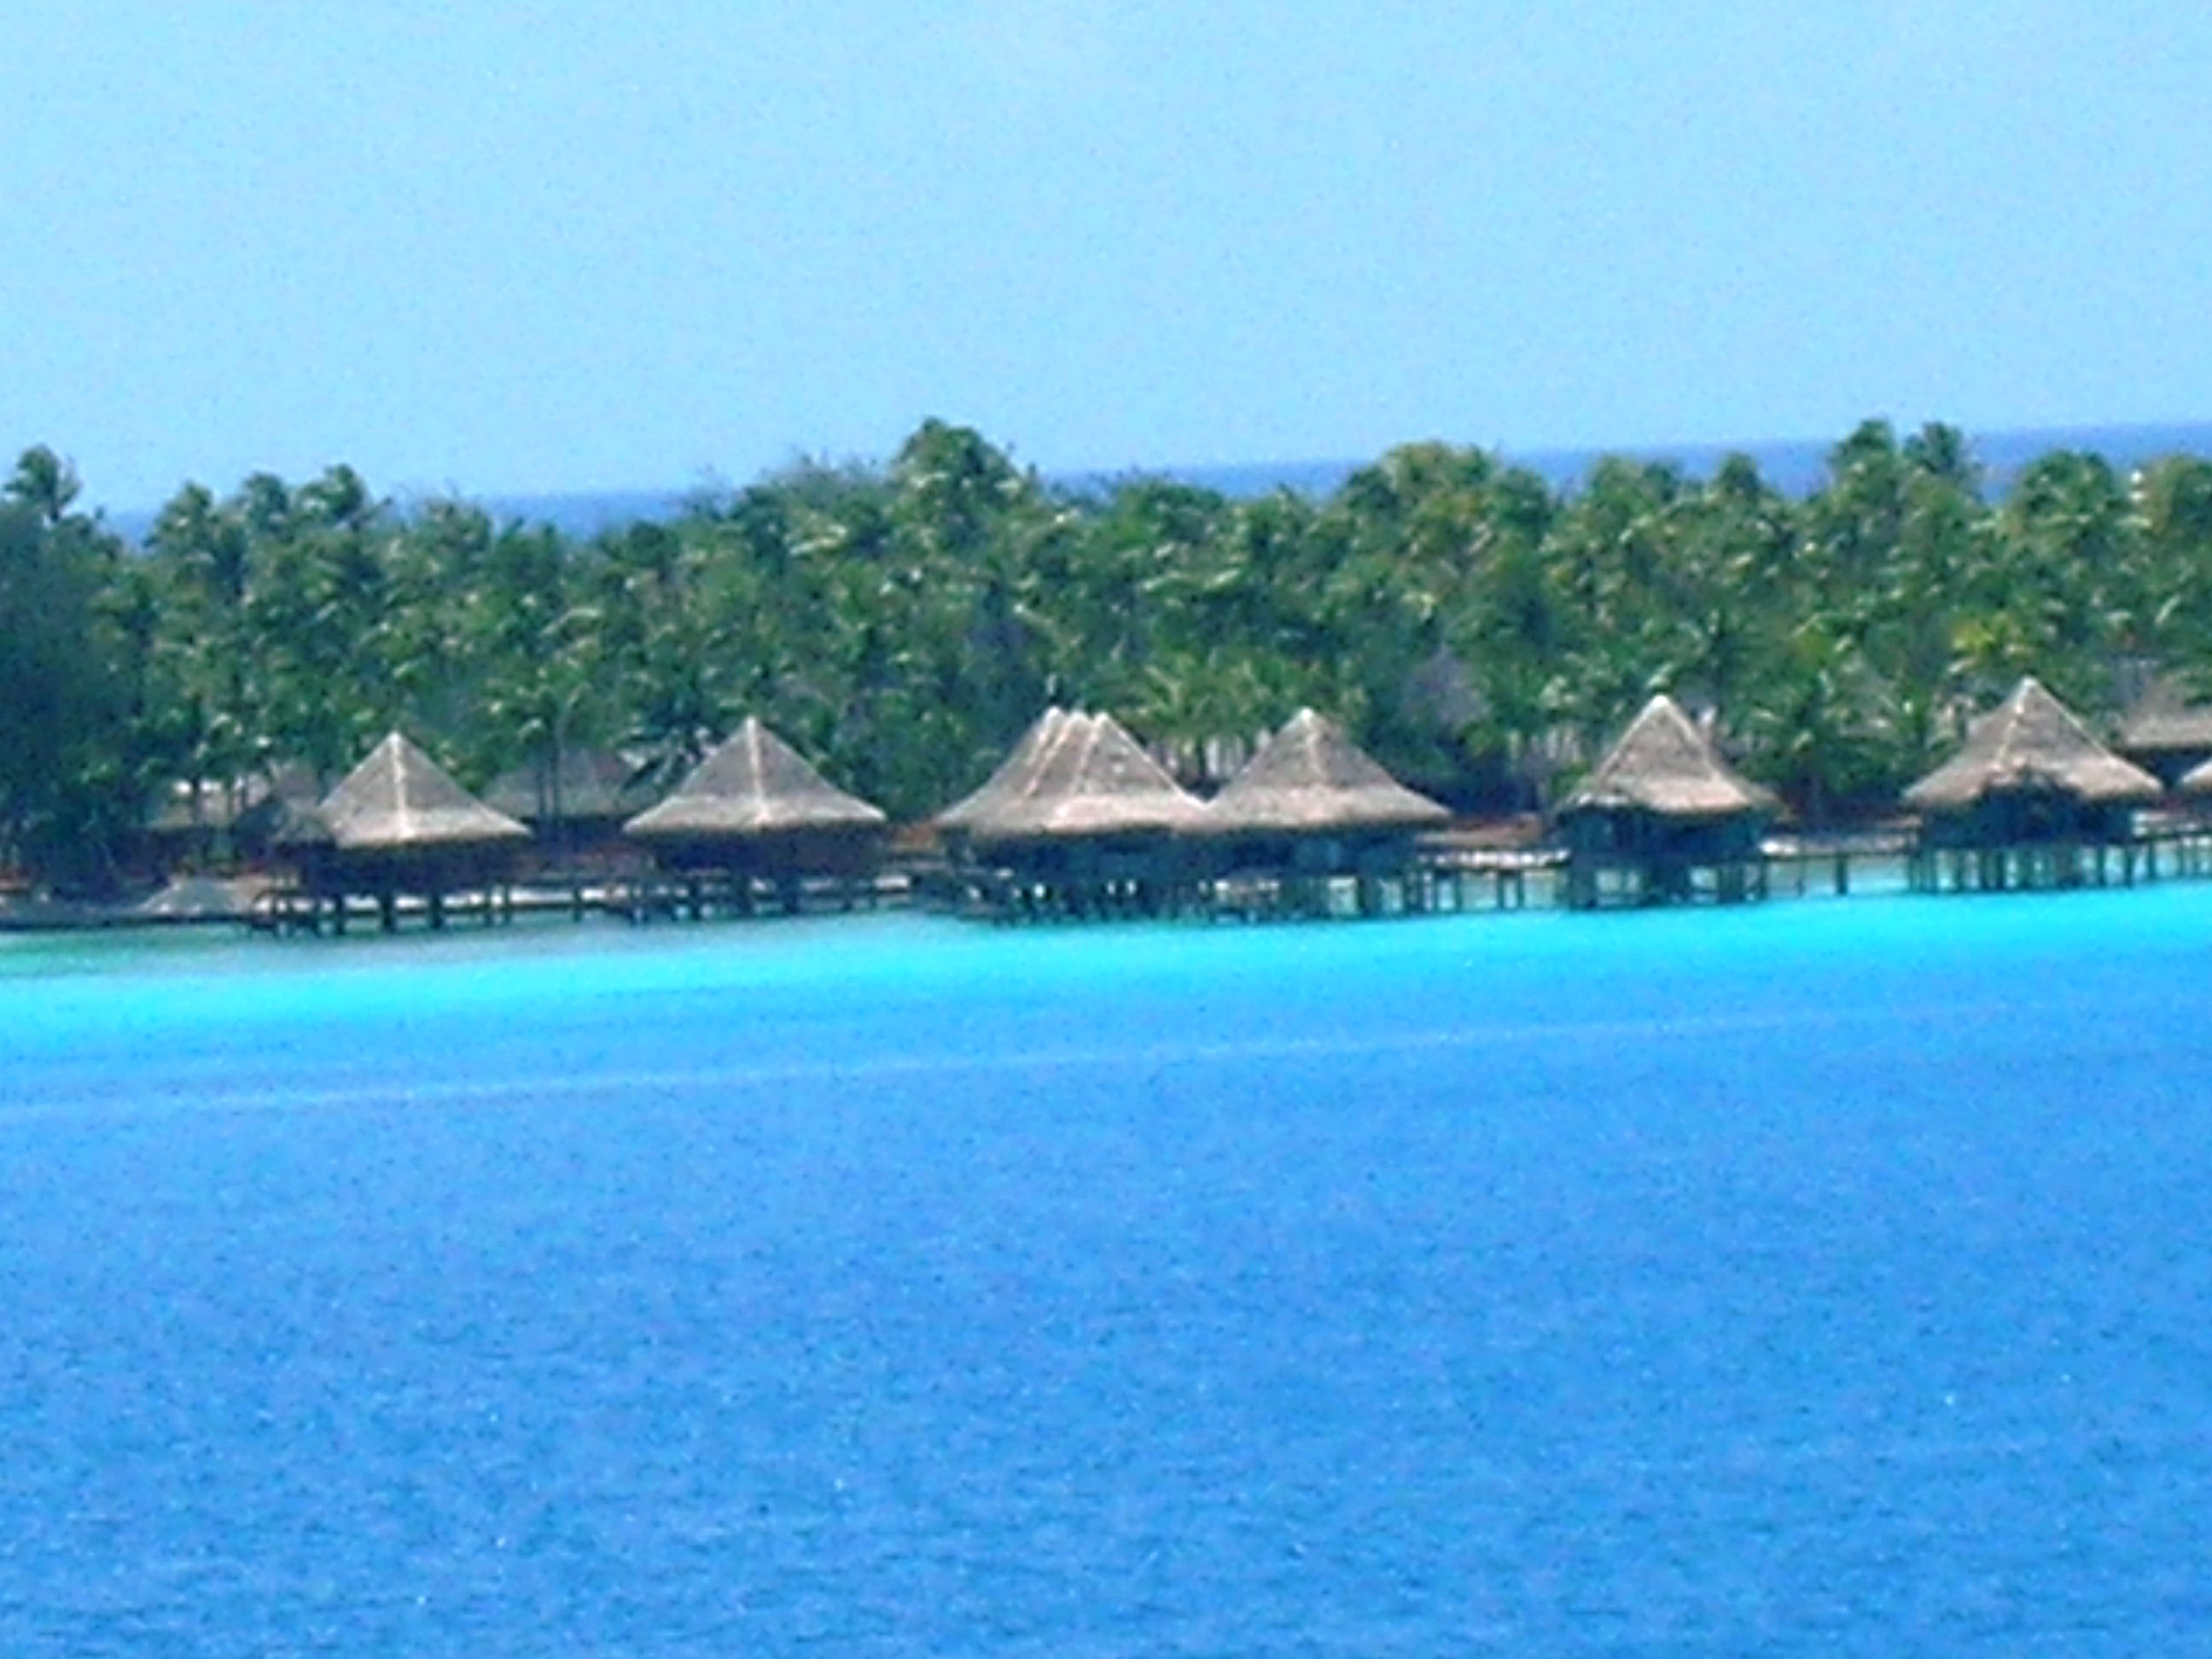 Rangiroa French Polynesia  City pictures : March 25, 2011: Rangiroa, Society Islands, French Polynesia ...